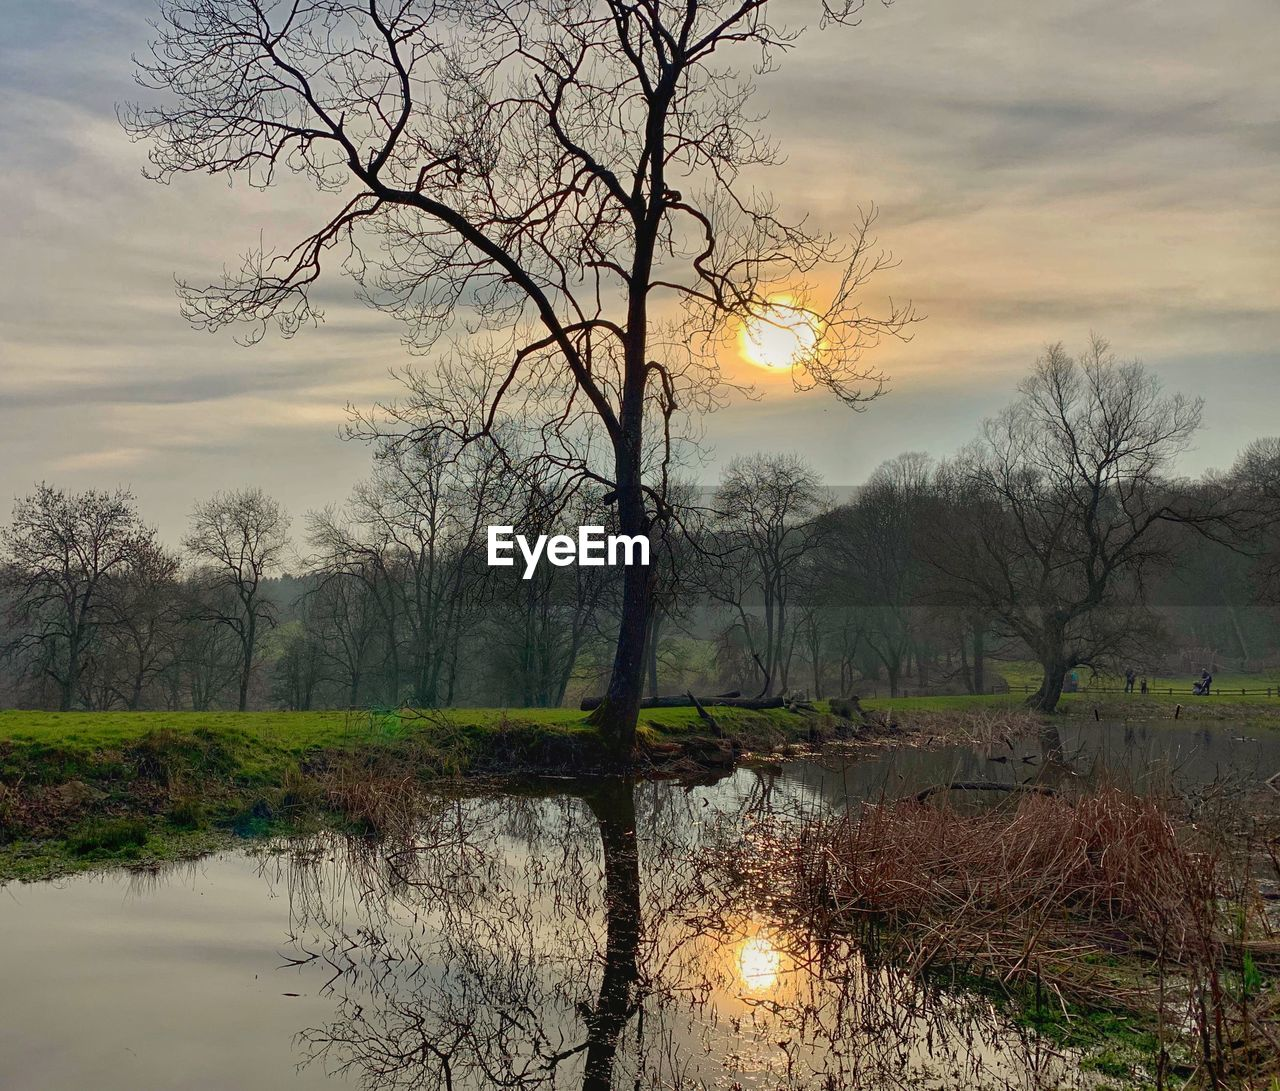 tree, water, reflection, tranquility, plant, sky, beauty in nature, scenics - nature, tranquil scene, cloud - sky, no people, nature, bare tree, sunset, lake, non-urban scene, outdoors, branch, idyllic, hazy